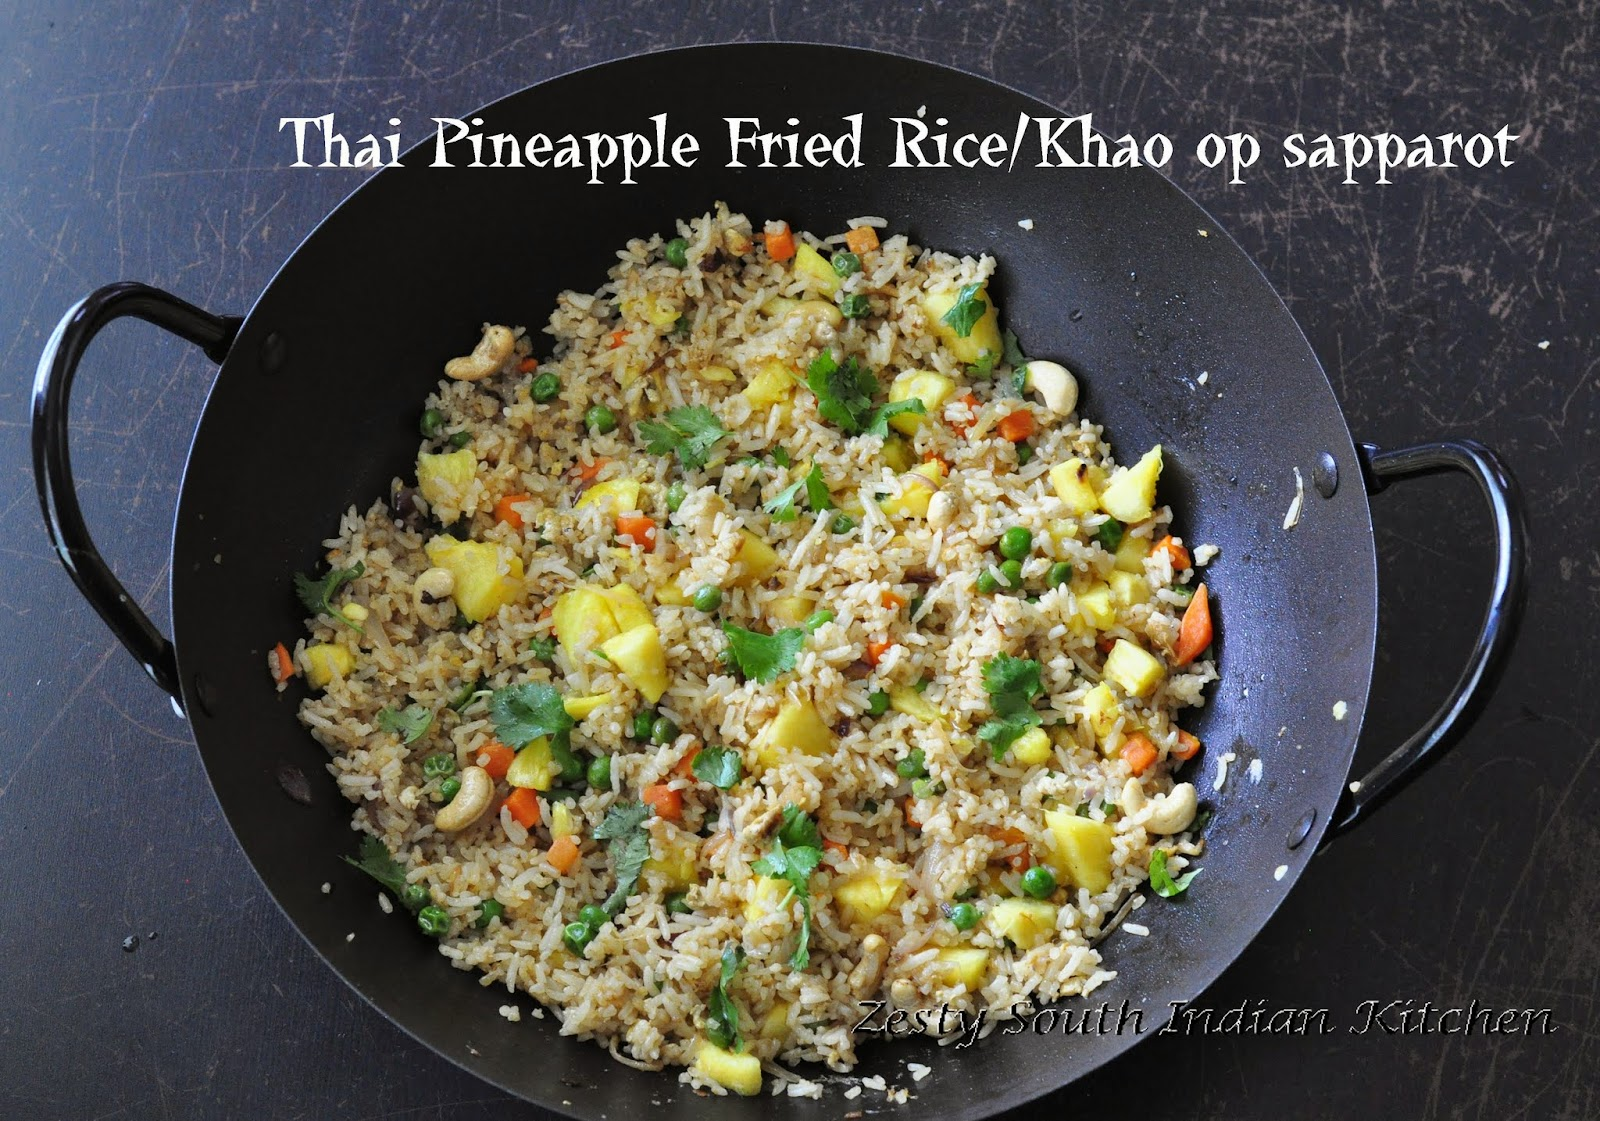 Thai Pineapple Fried Rice/Khao op sapparot - Zesty South Indian ...